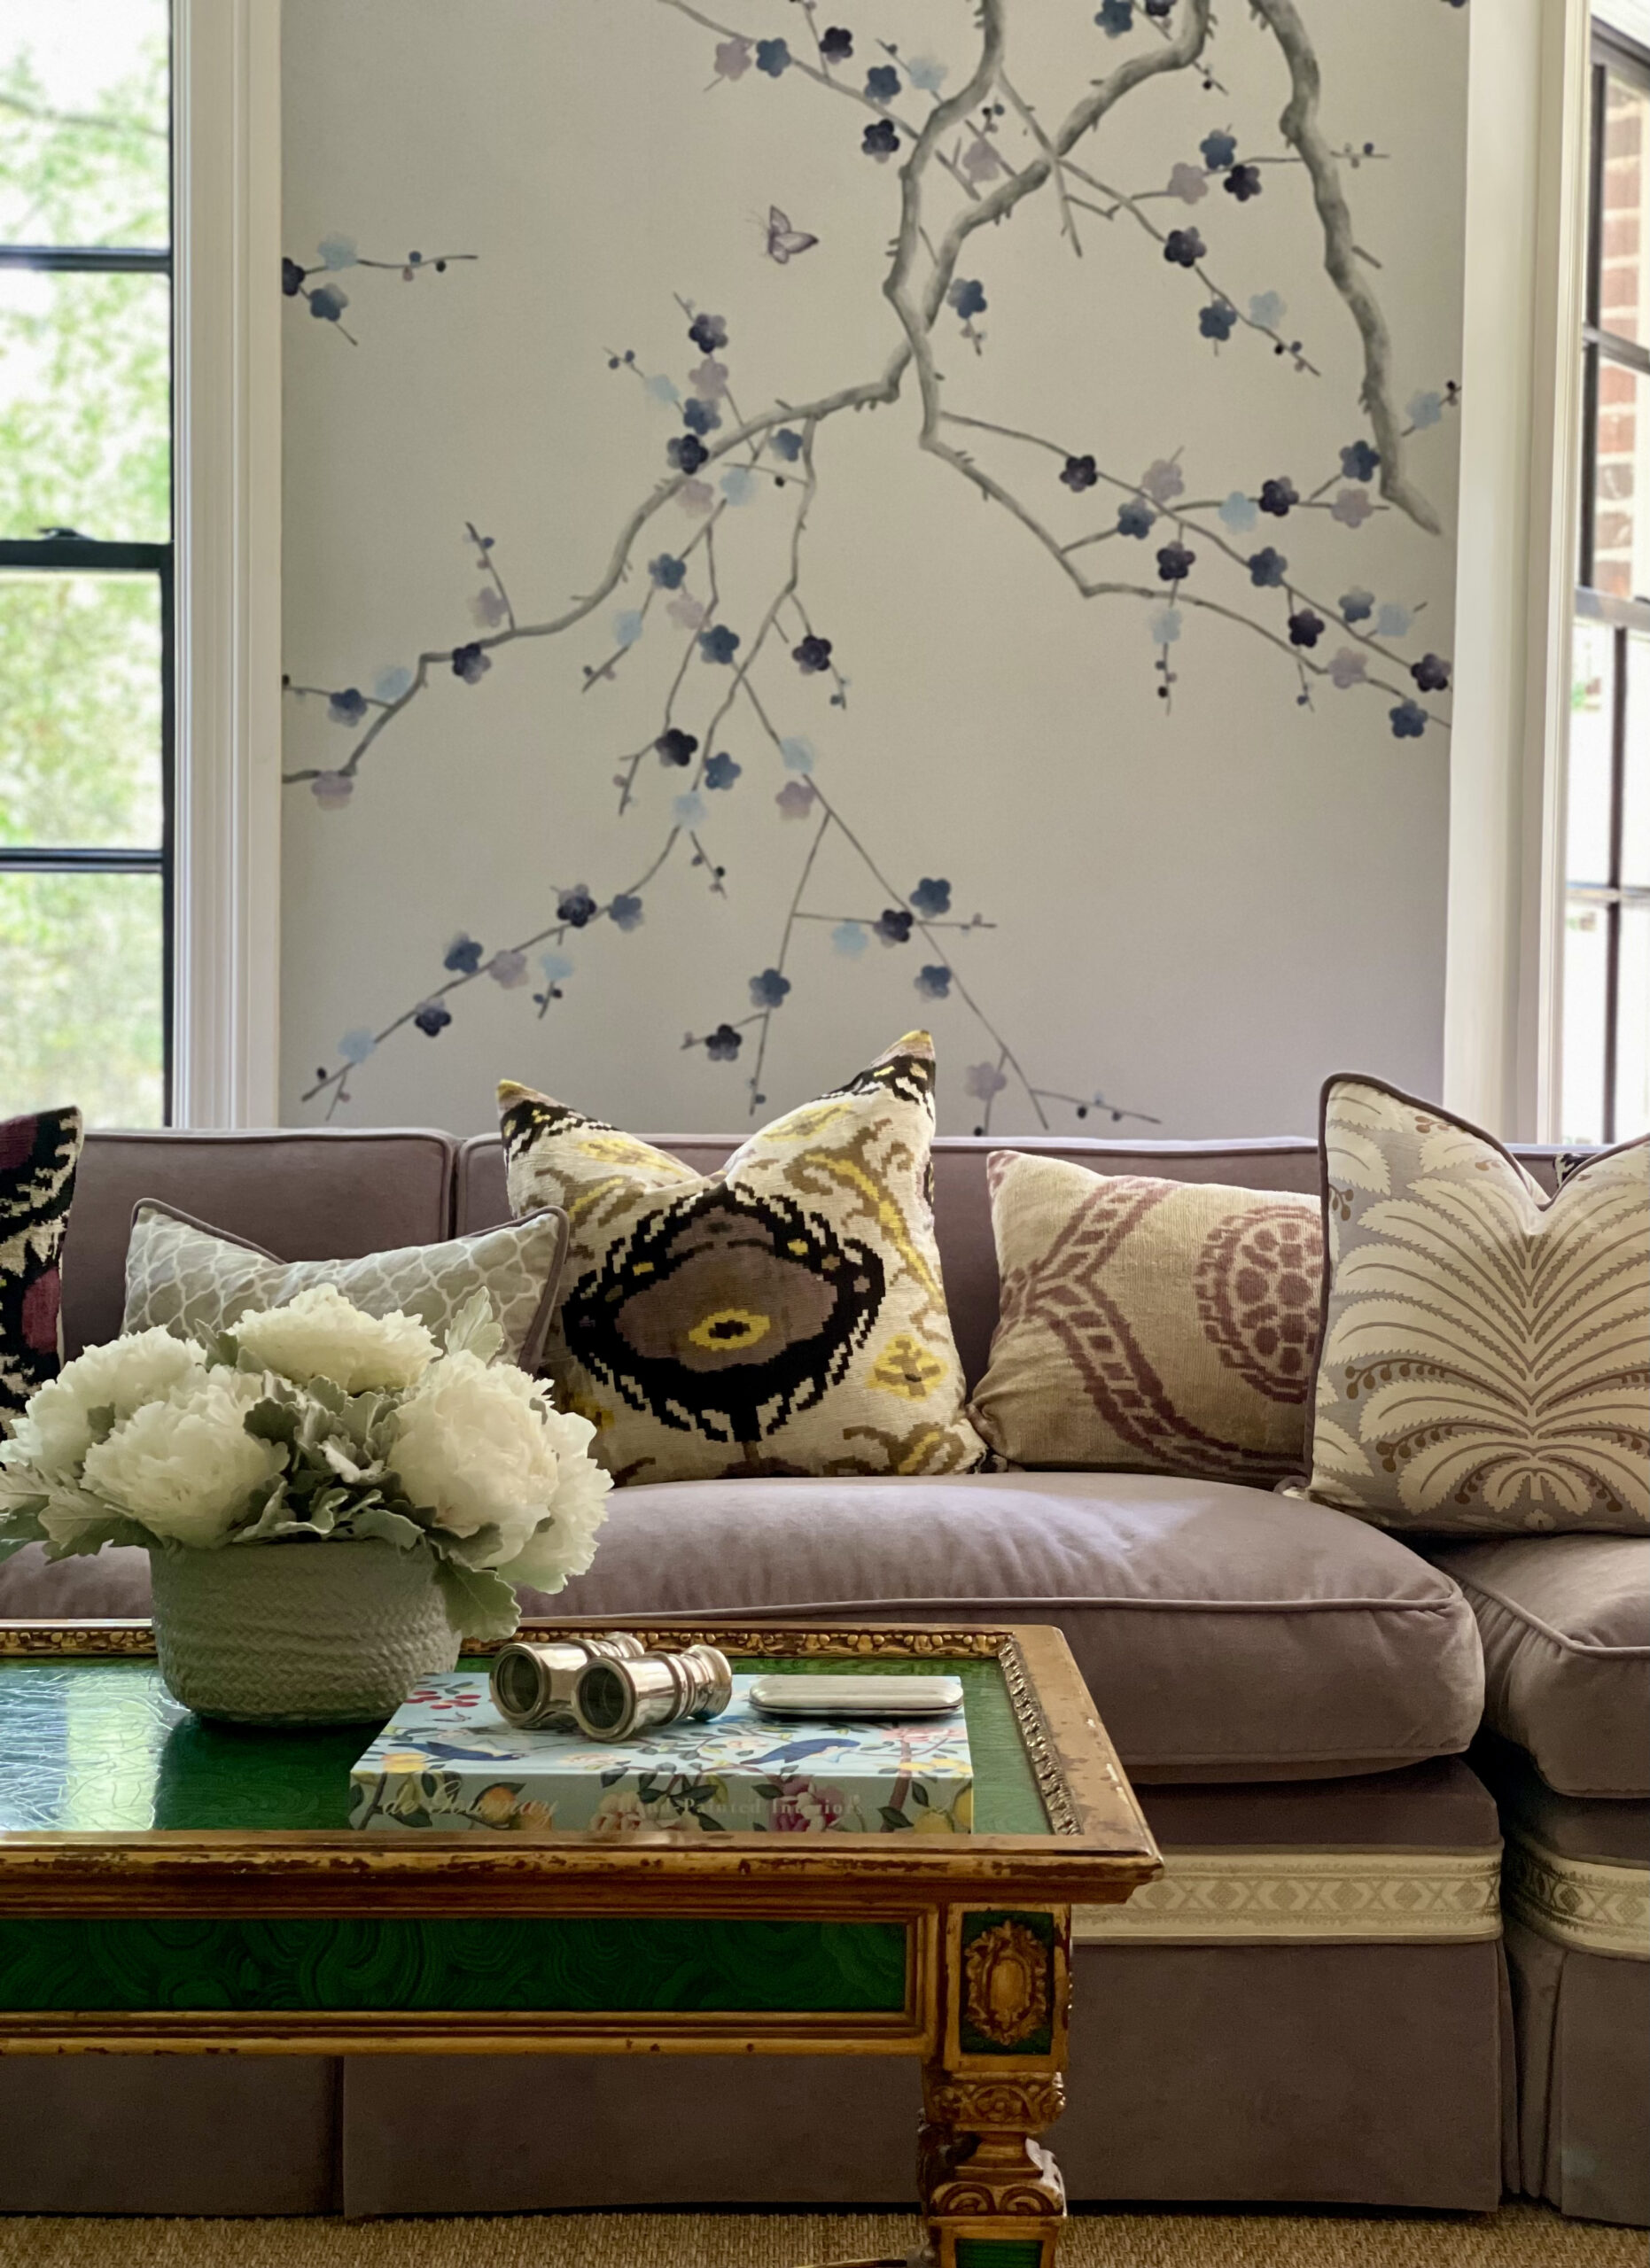 Kane & Co is a full service studio specializing in interior design